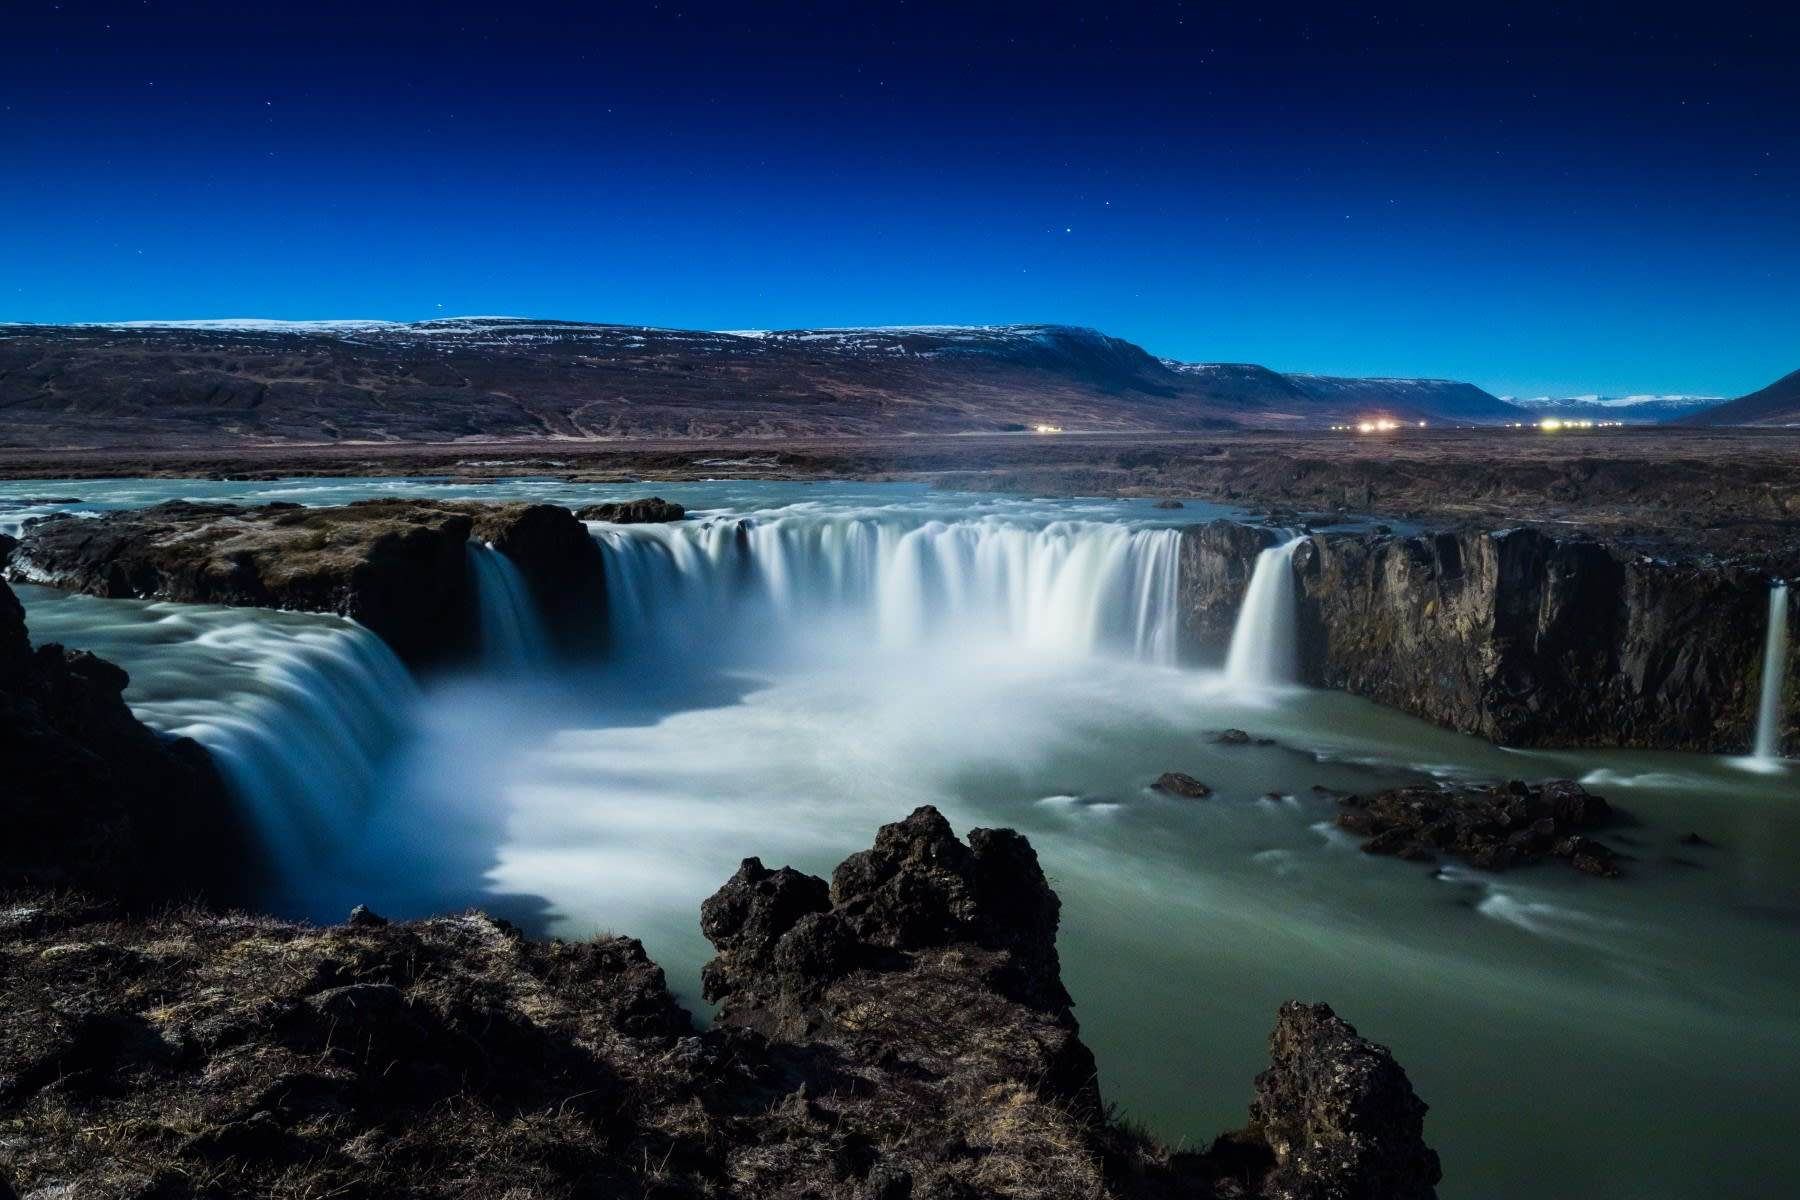 An image of Godafoss waterfall in North Iceland on a bright blue sky day